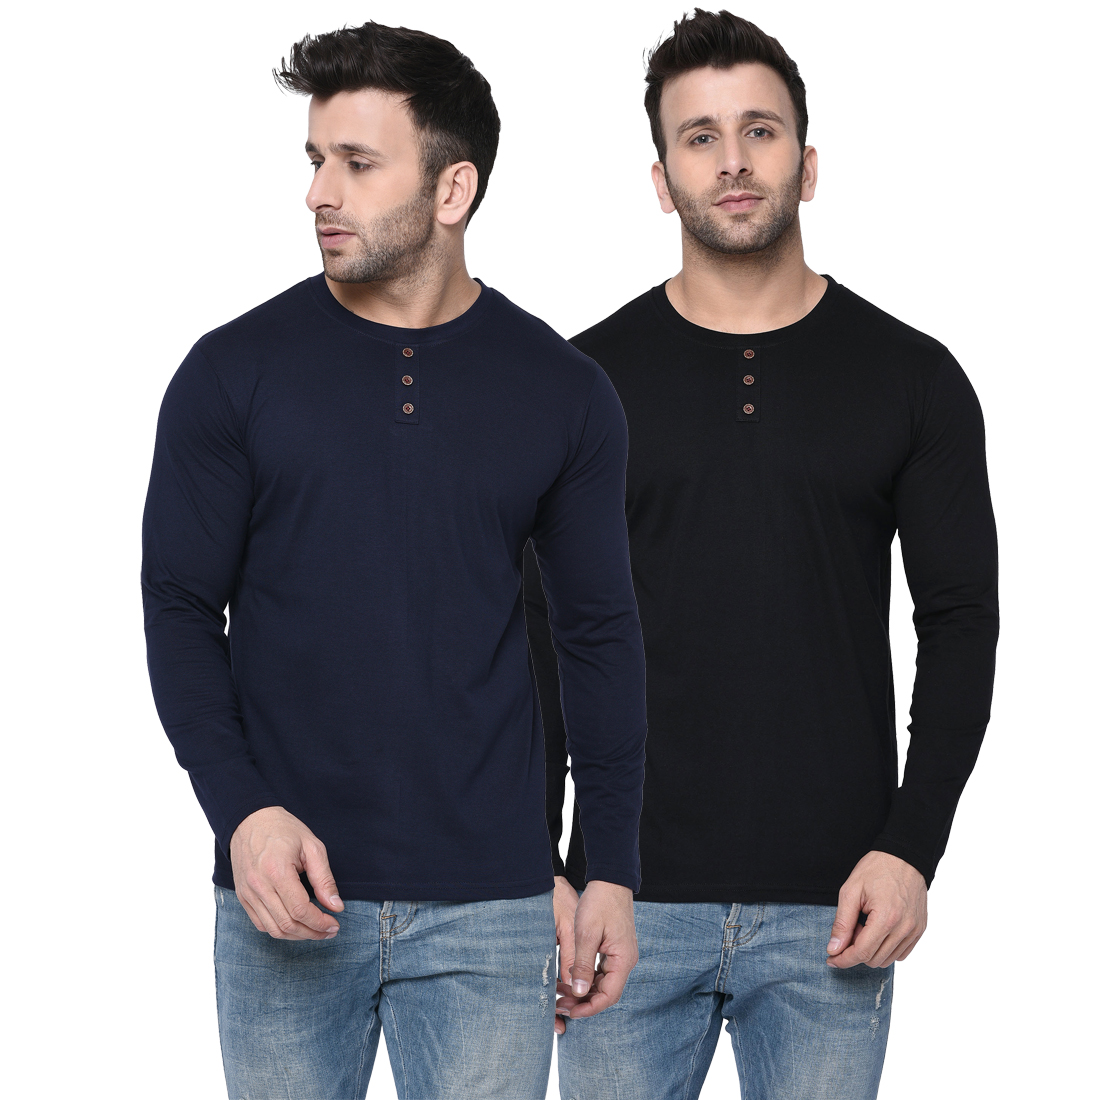 London Hills Men's Pure Cotton Solid Full Sleeve Round Neck Regular Fit Navy Blue and Black T-Shirt (Pack of 2) (LH_T_504_502)